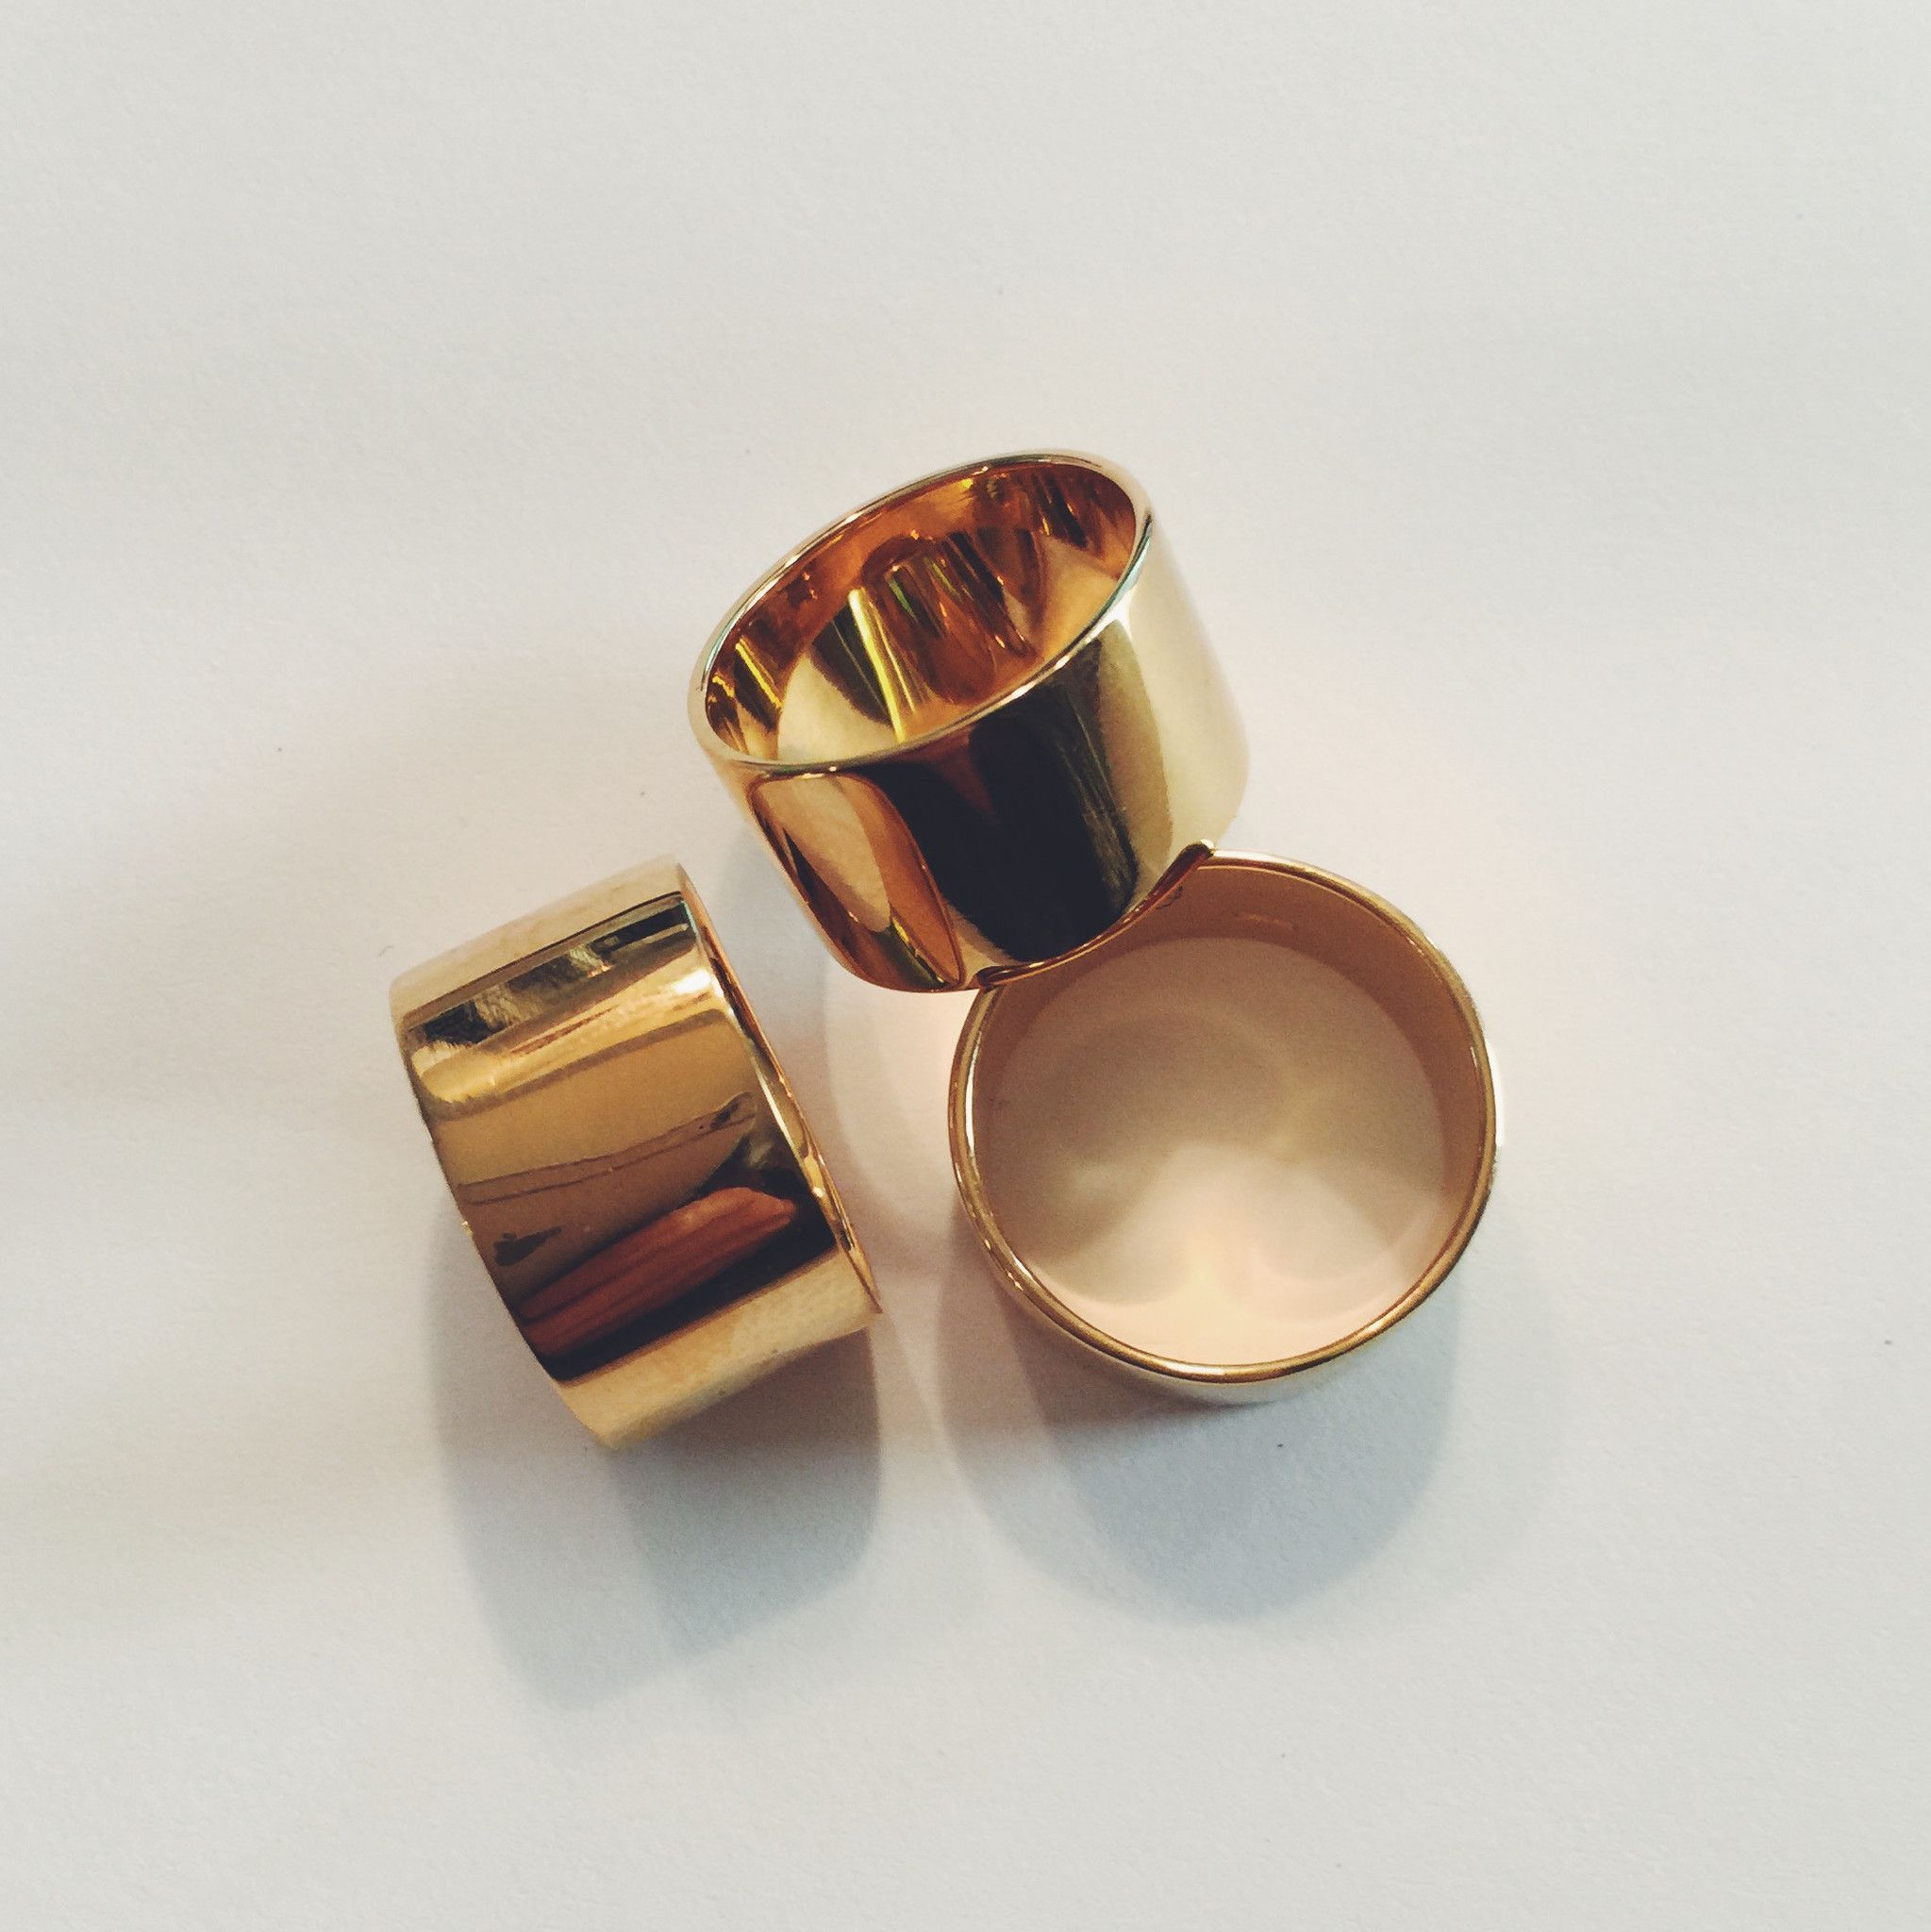 Thick gold band goldjewelleryunique goldjewellerychunky gold